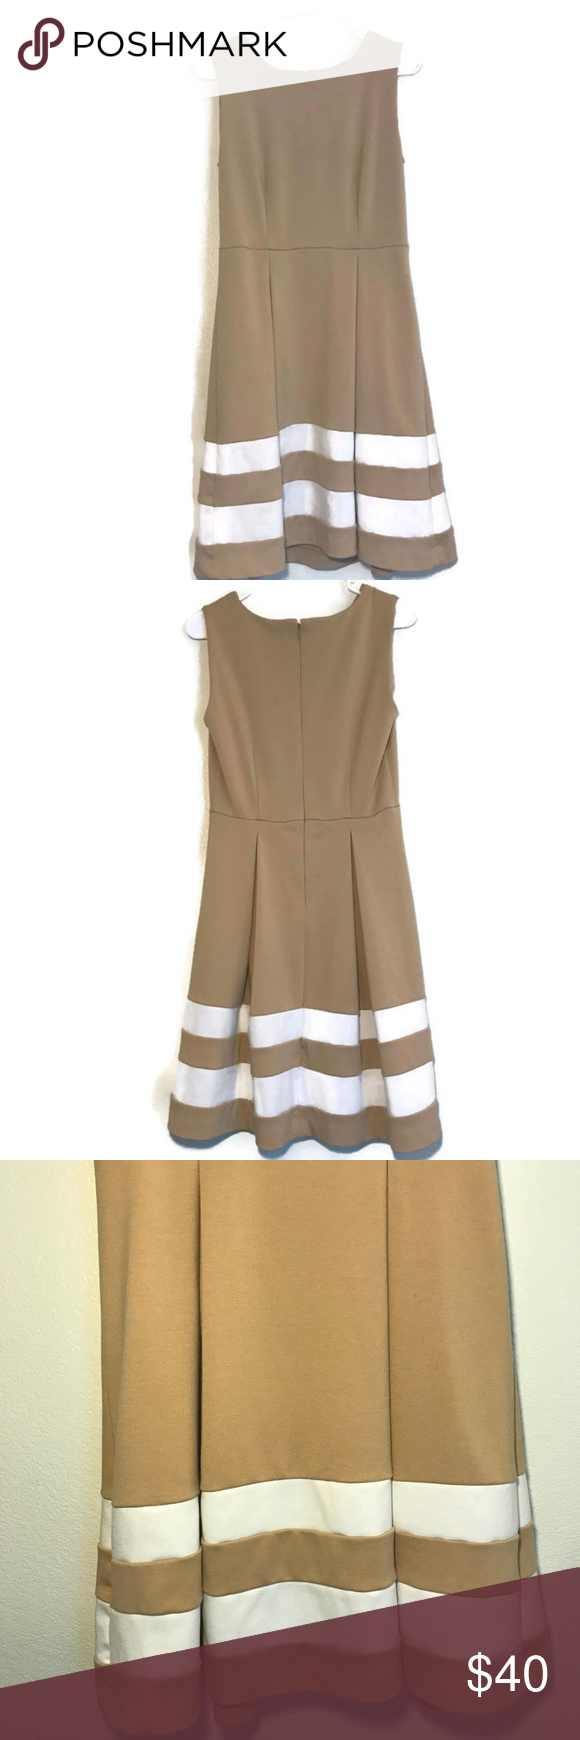 Calvin Klein Fit And Flare Tan And White Dress Professional Dresses Fit And Flare Dress Clothes Design [ 1740 x 580 Pixel ]